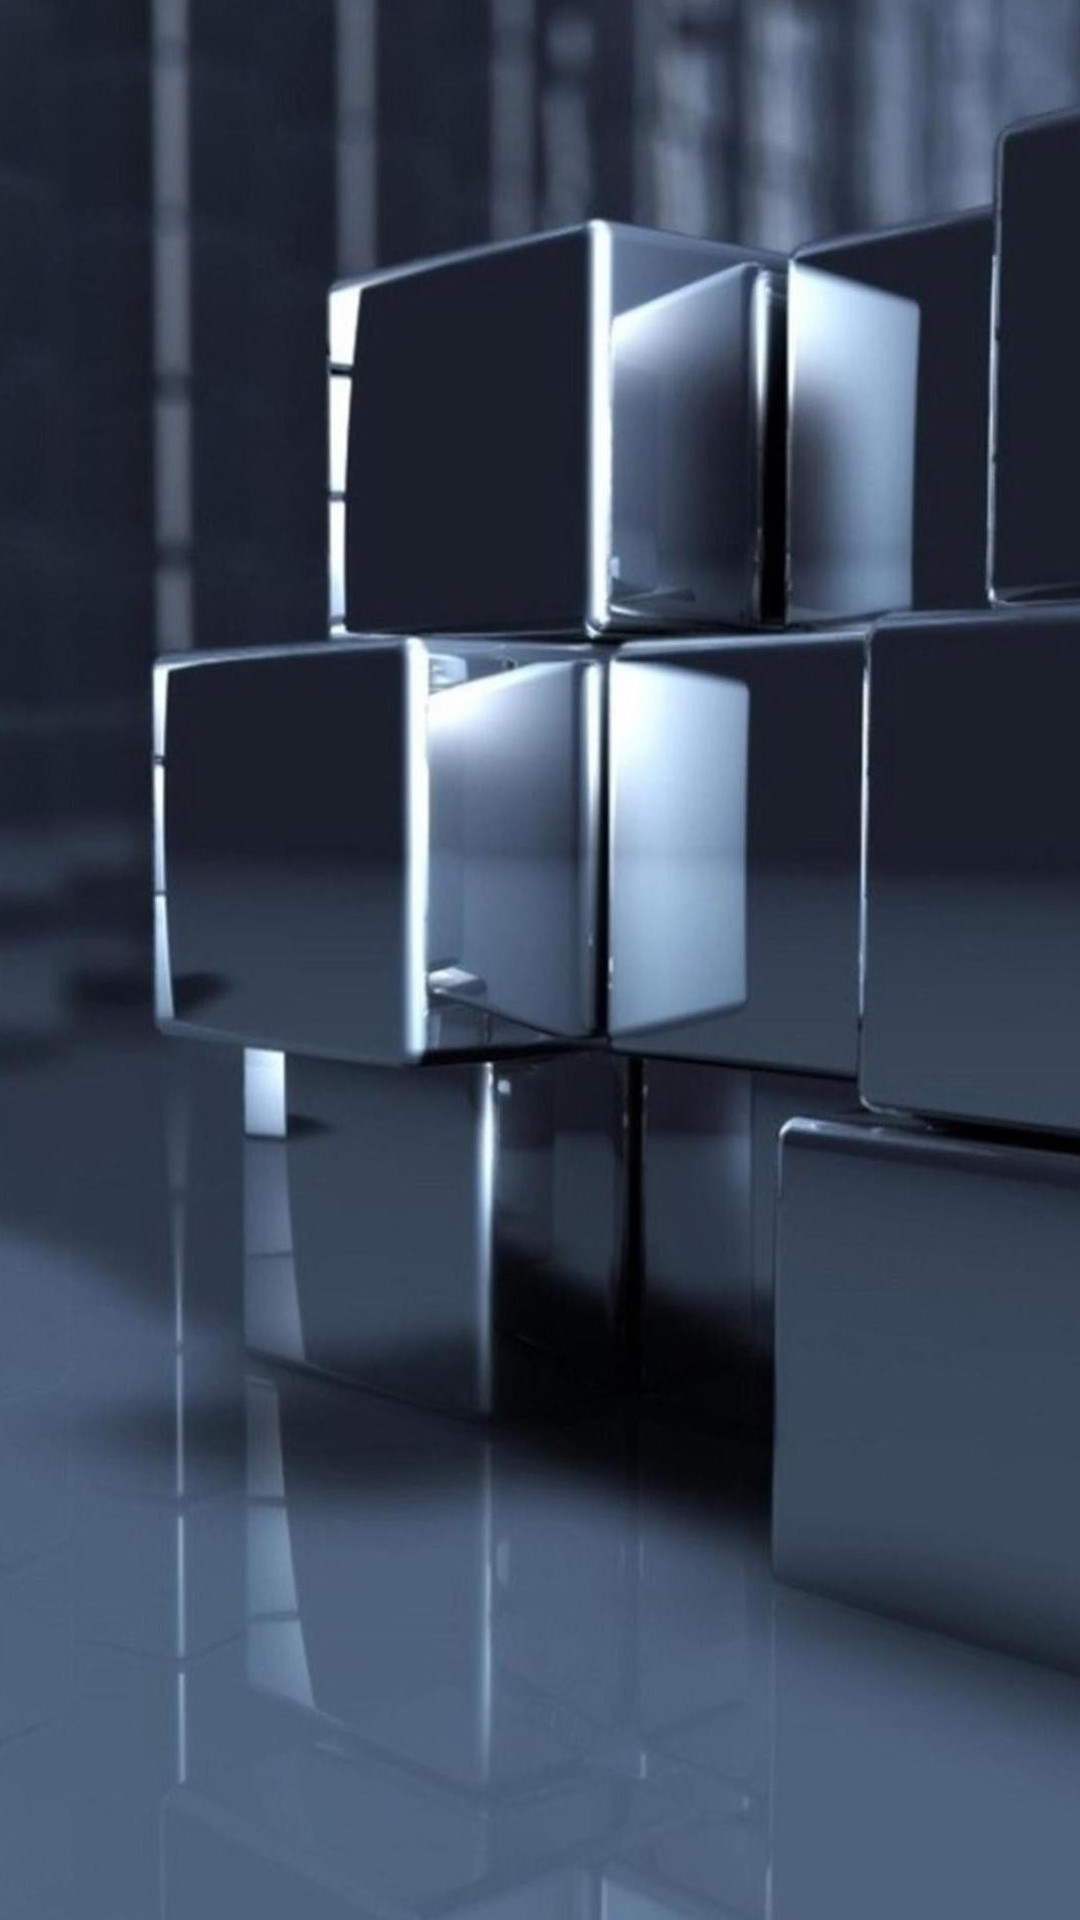 59 Business Wallpapers Hd